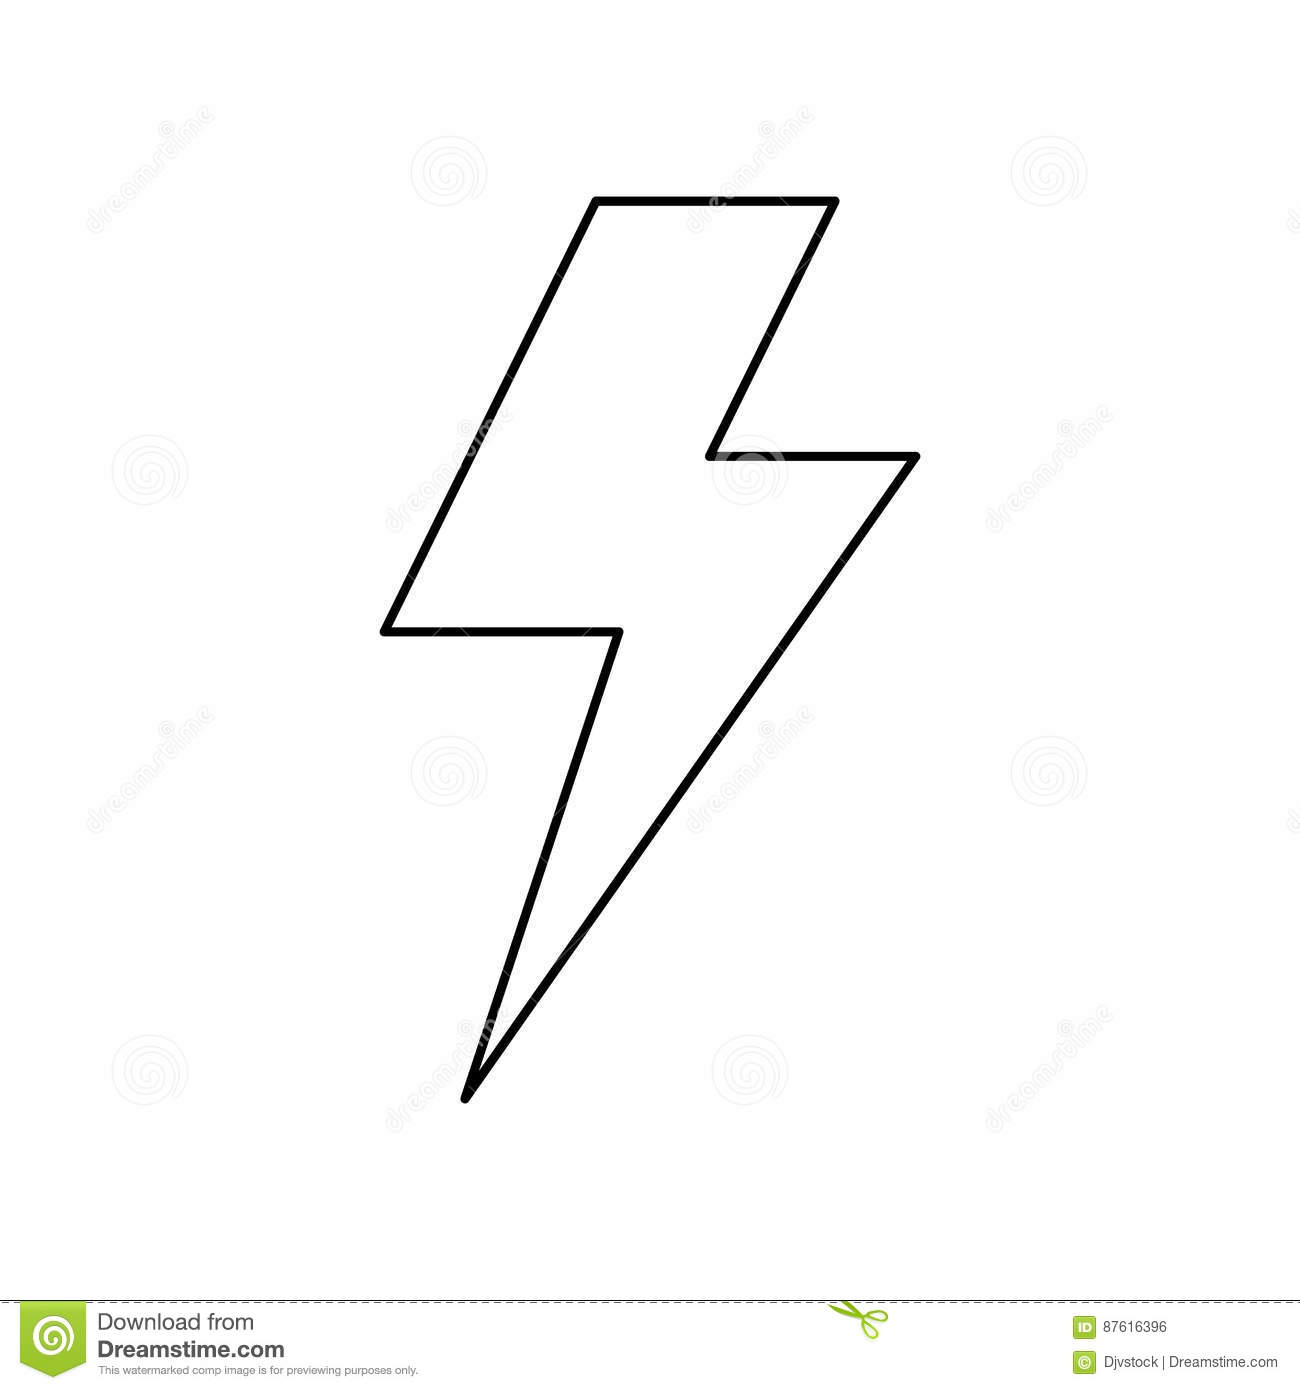 Modern Electrical Symbol For Generator Image - Electrical System ...